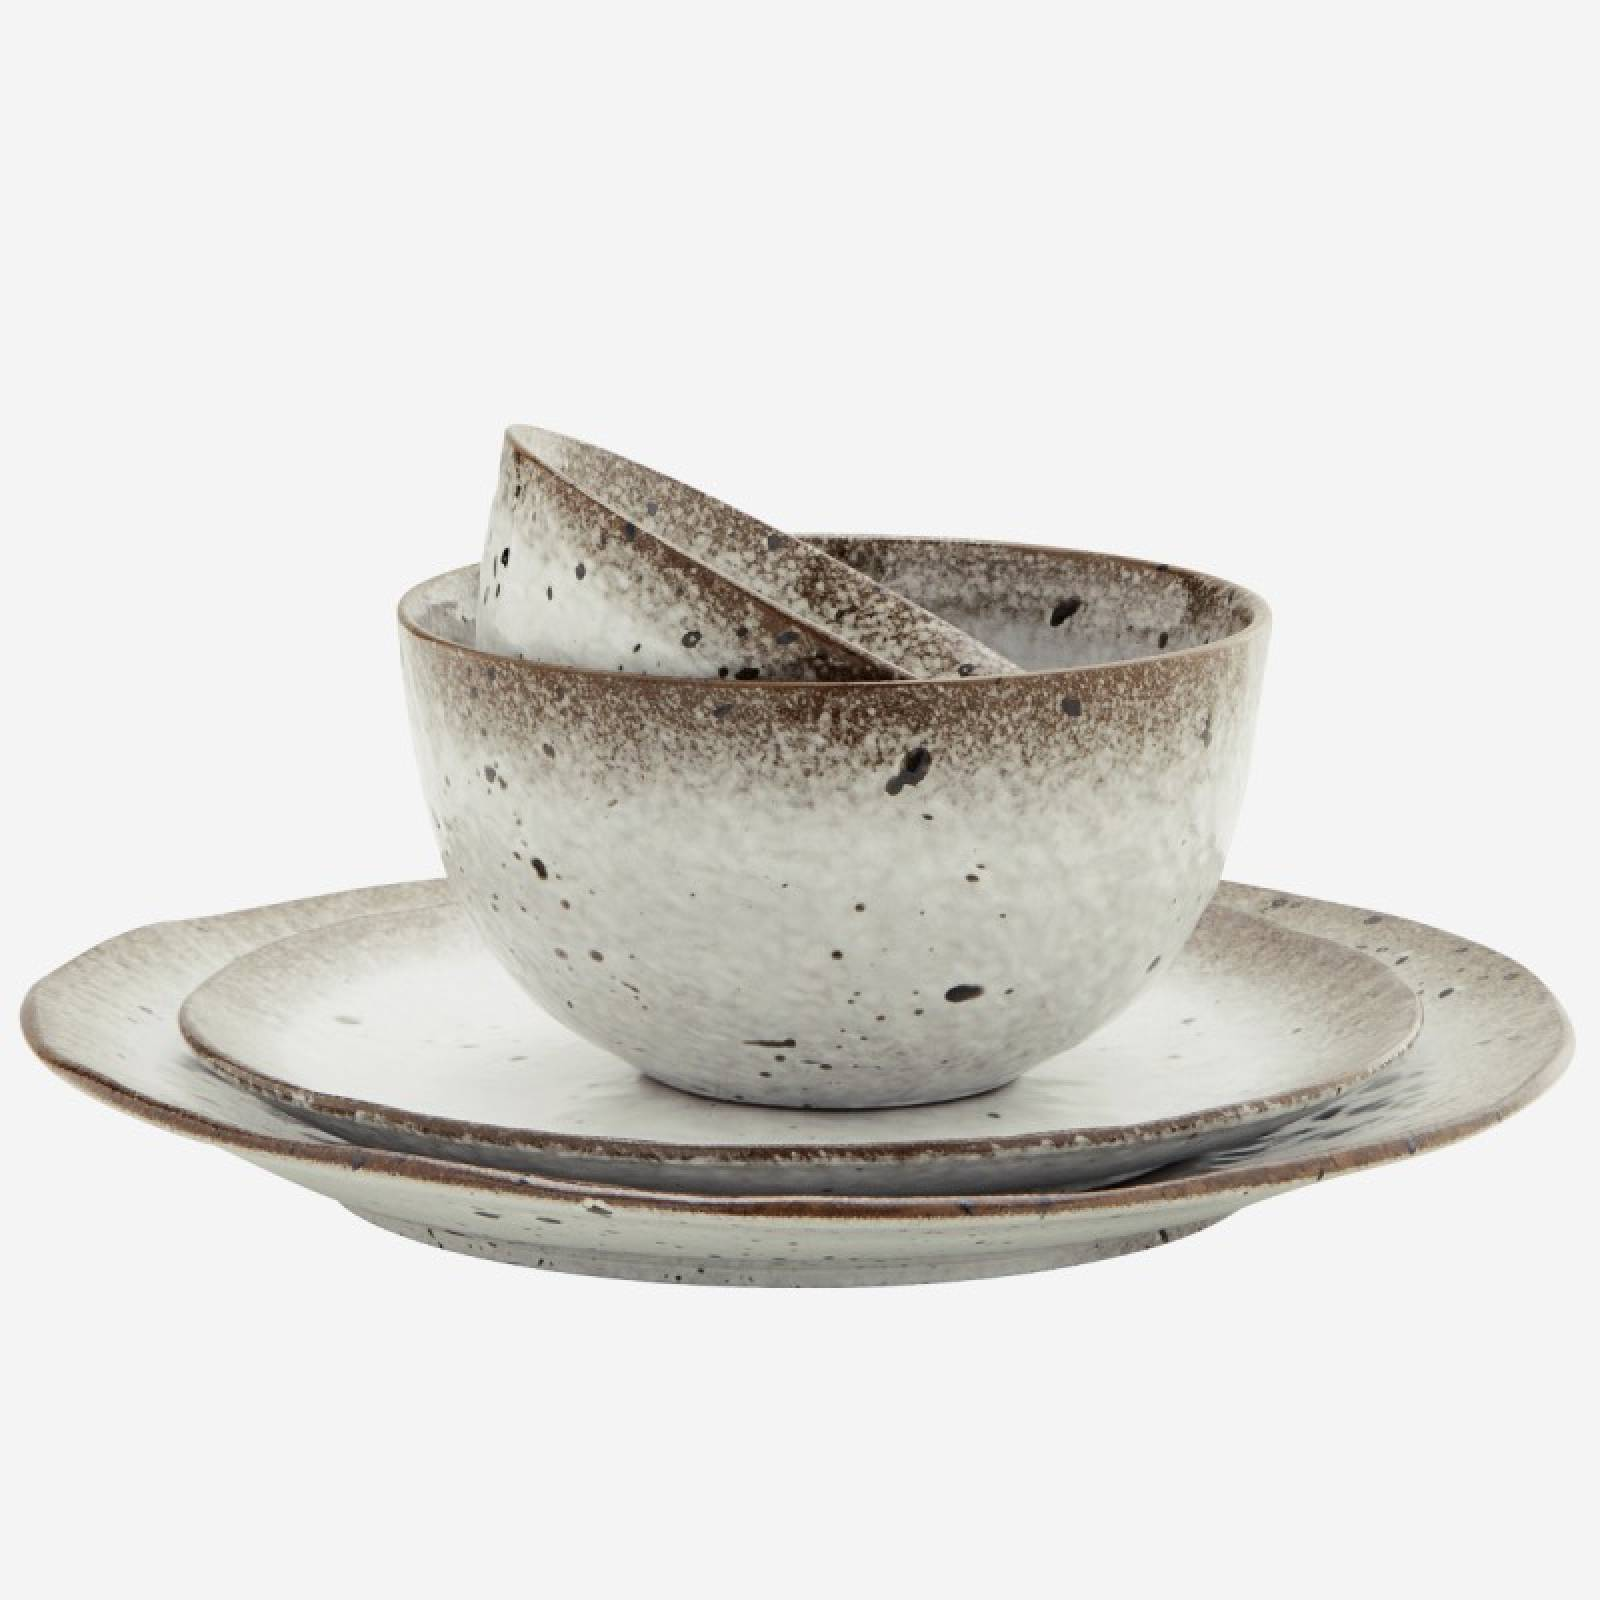 Speckled Stoneware Bowl In Brown & White thumbnails